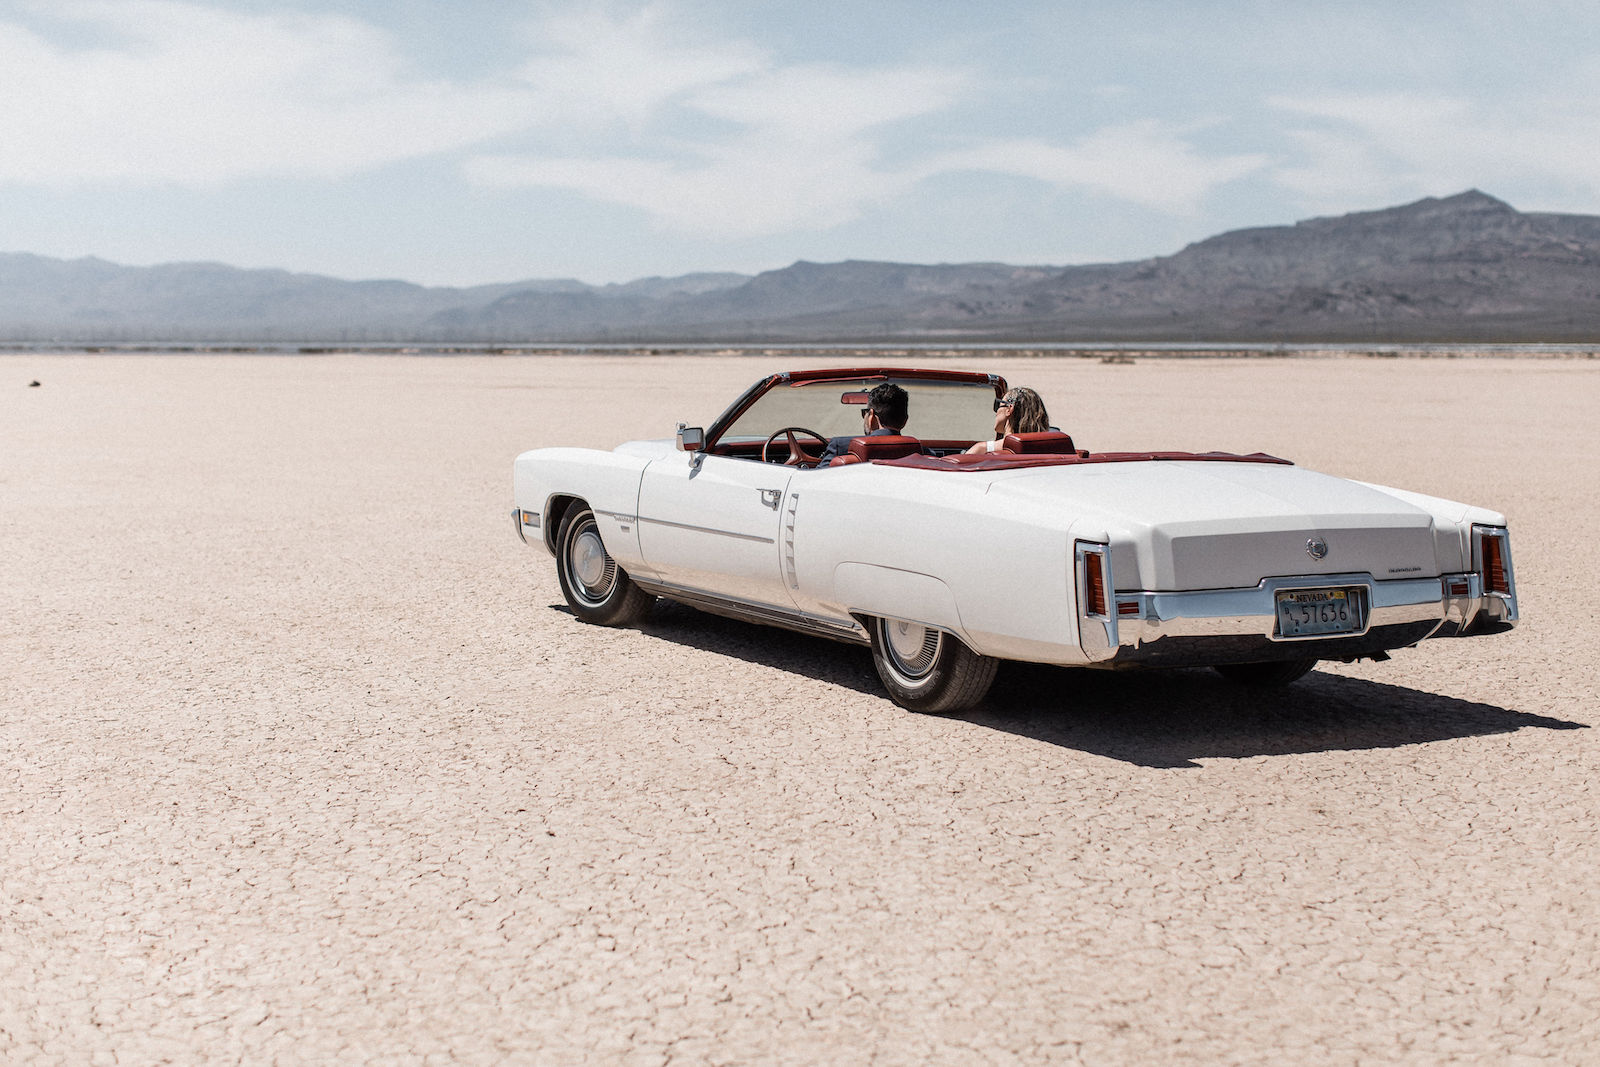 cadillac convertible dry lake bed elopement 00052.jpg